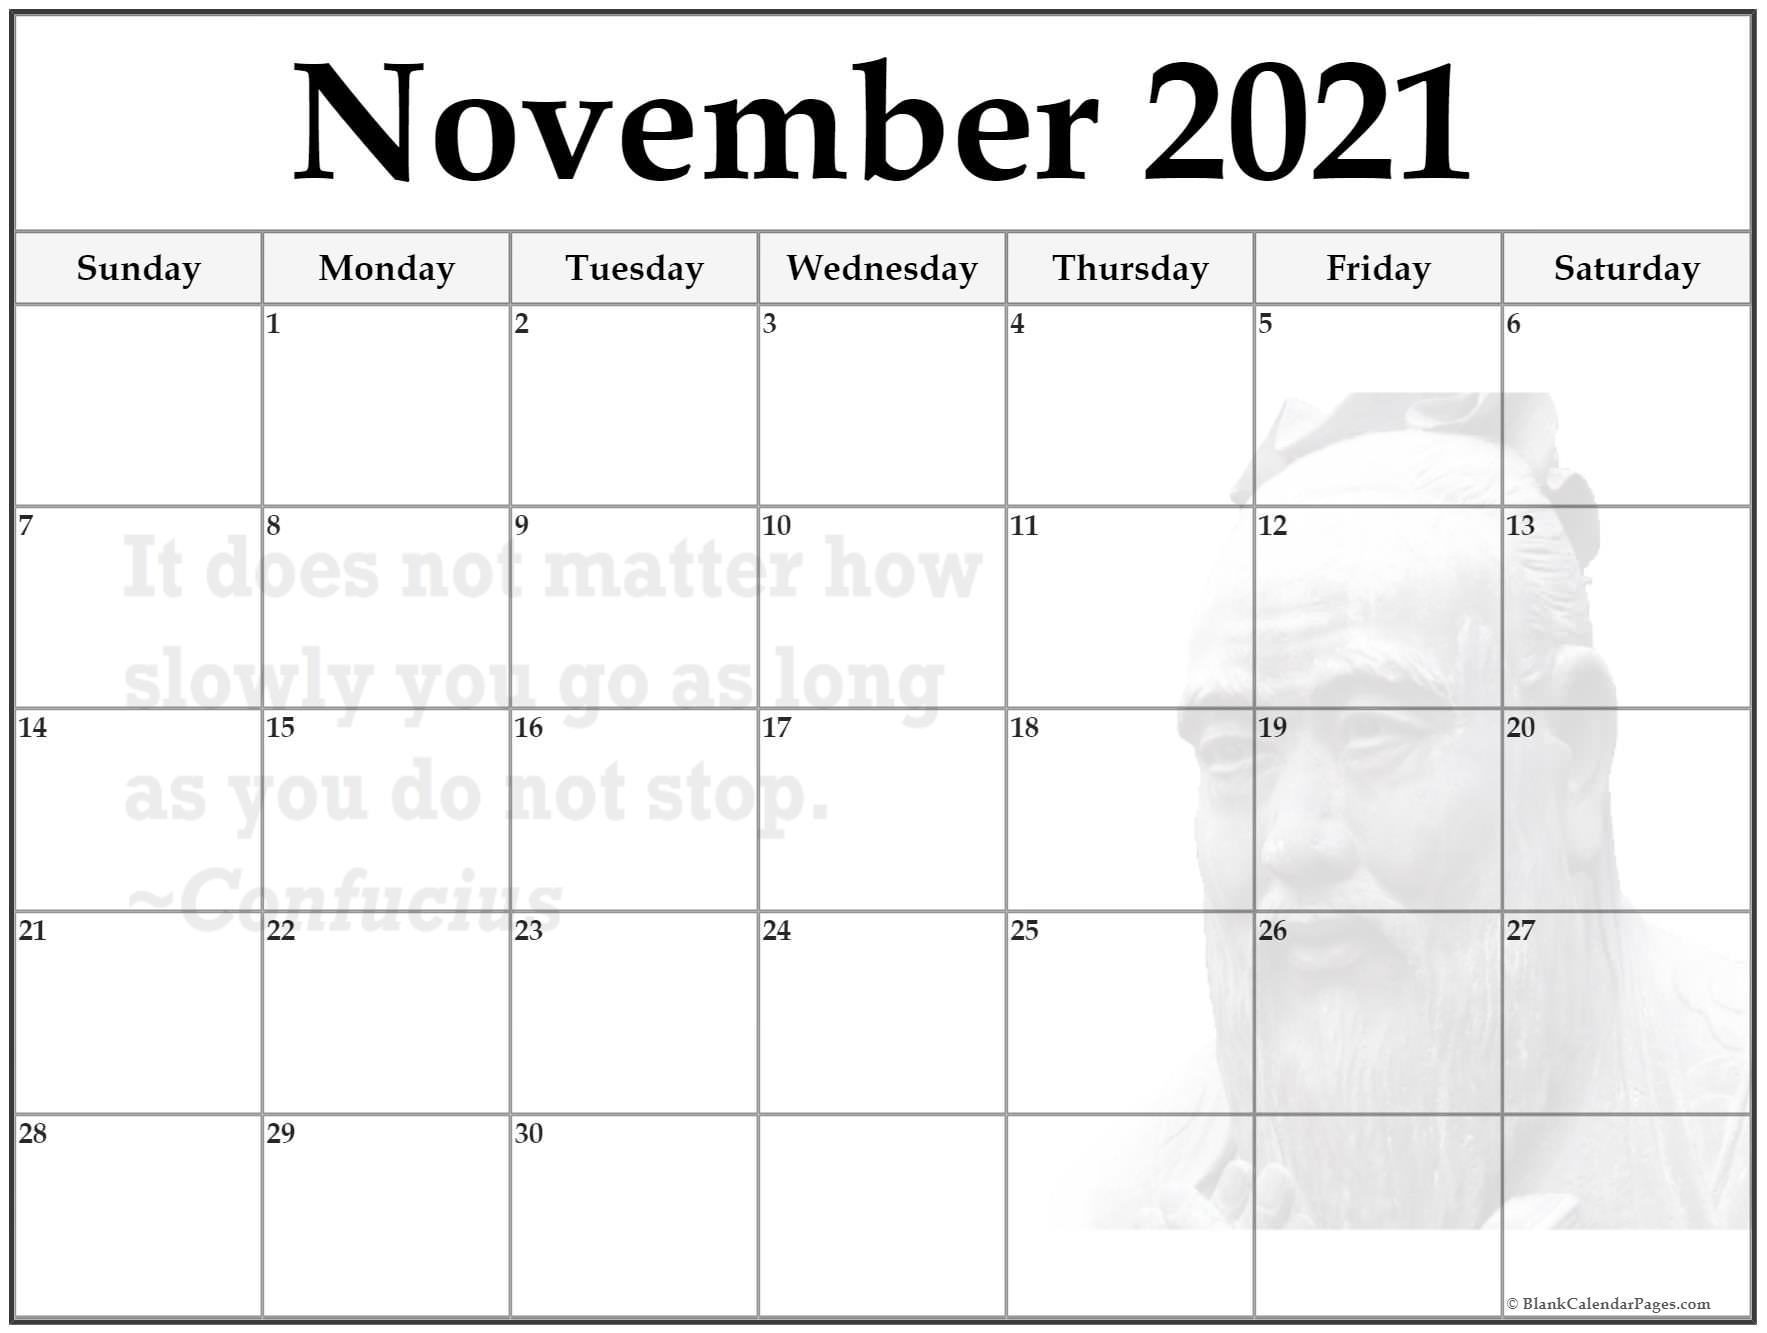 November 2018 monthly calendar template. It does not matter how slowly you go as long as you don't stop ~Confucius